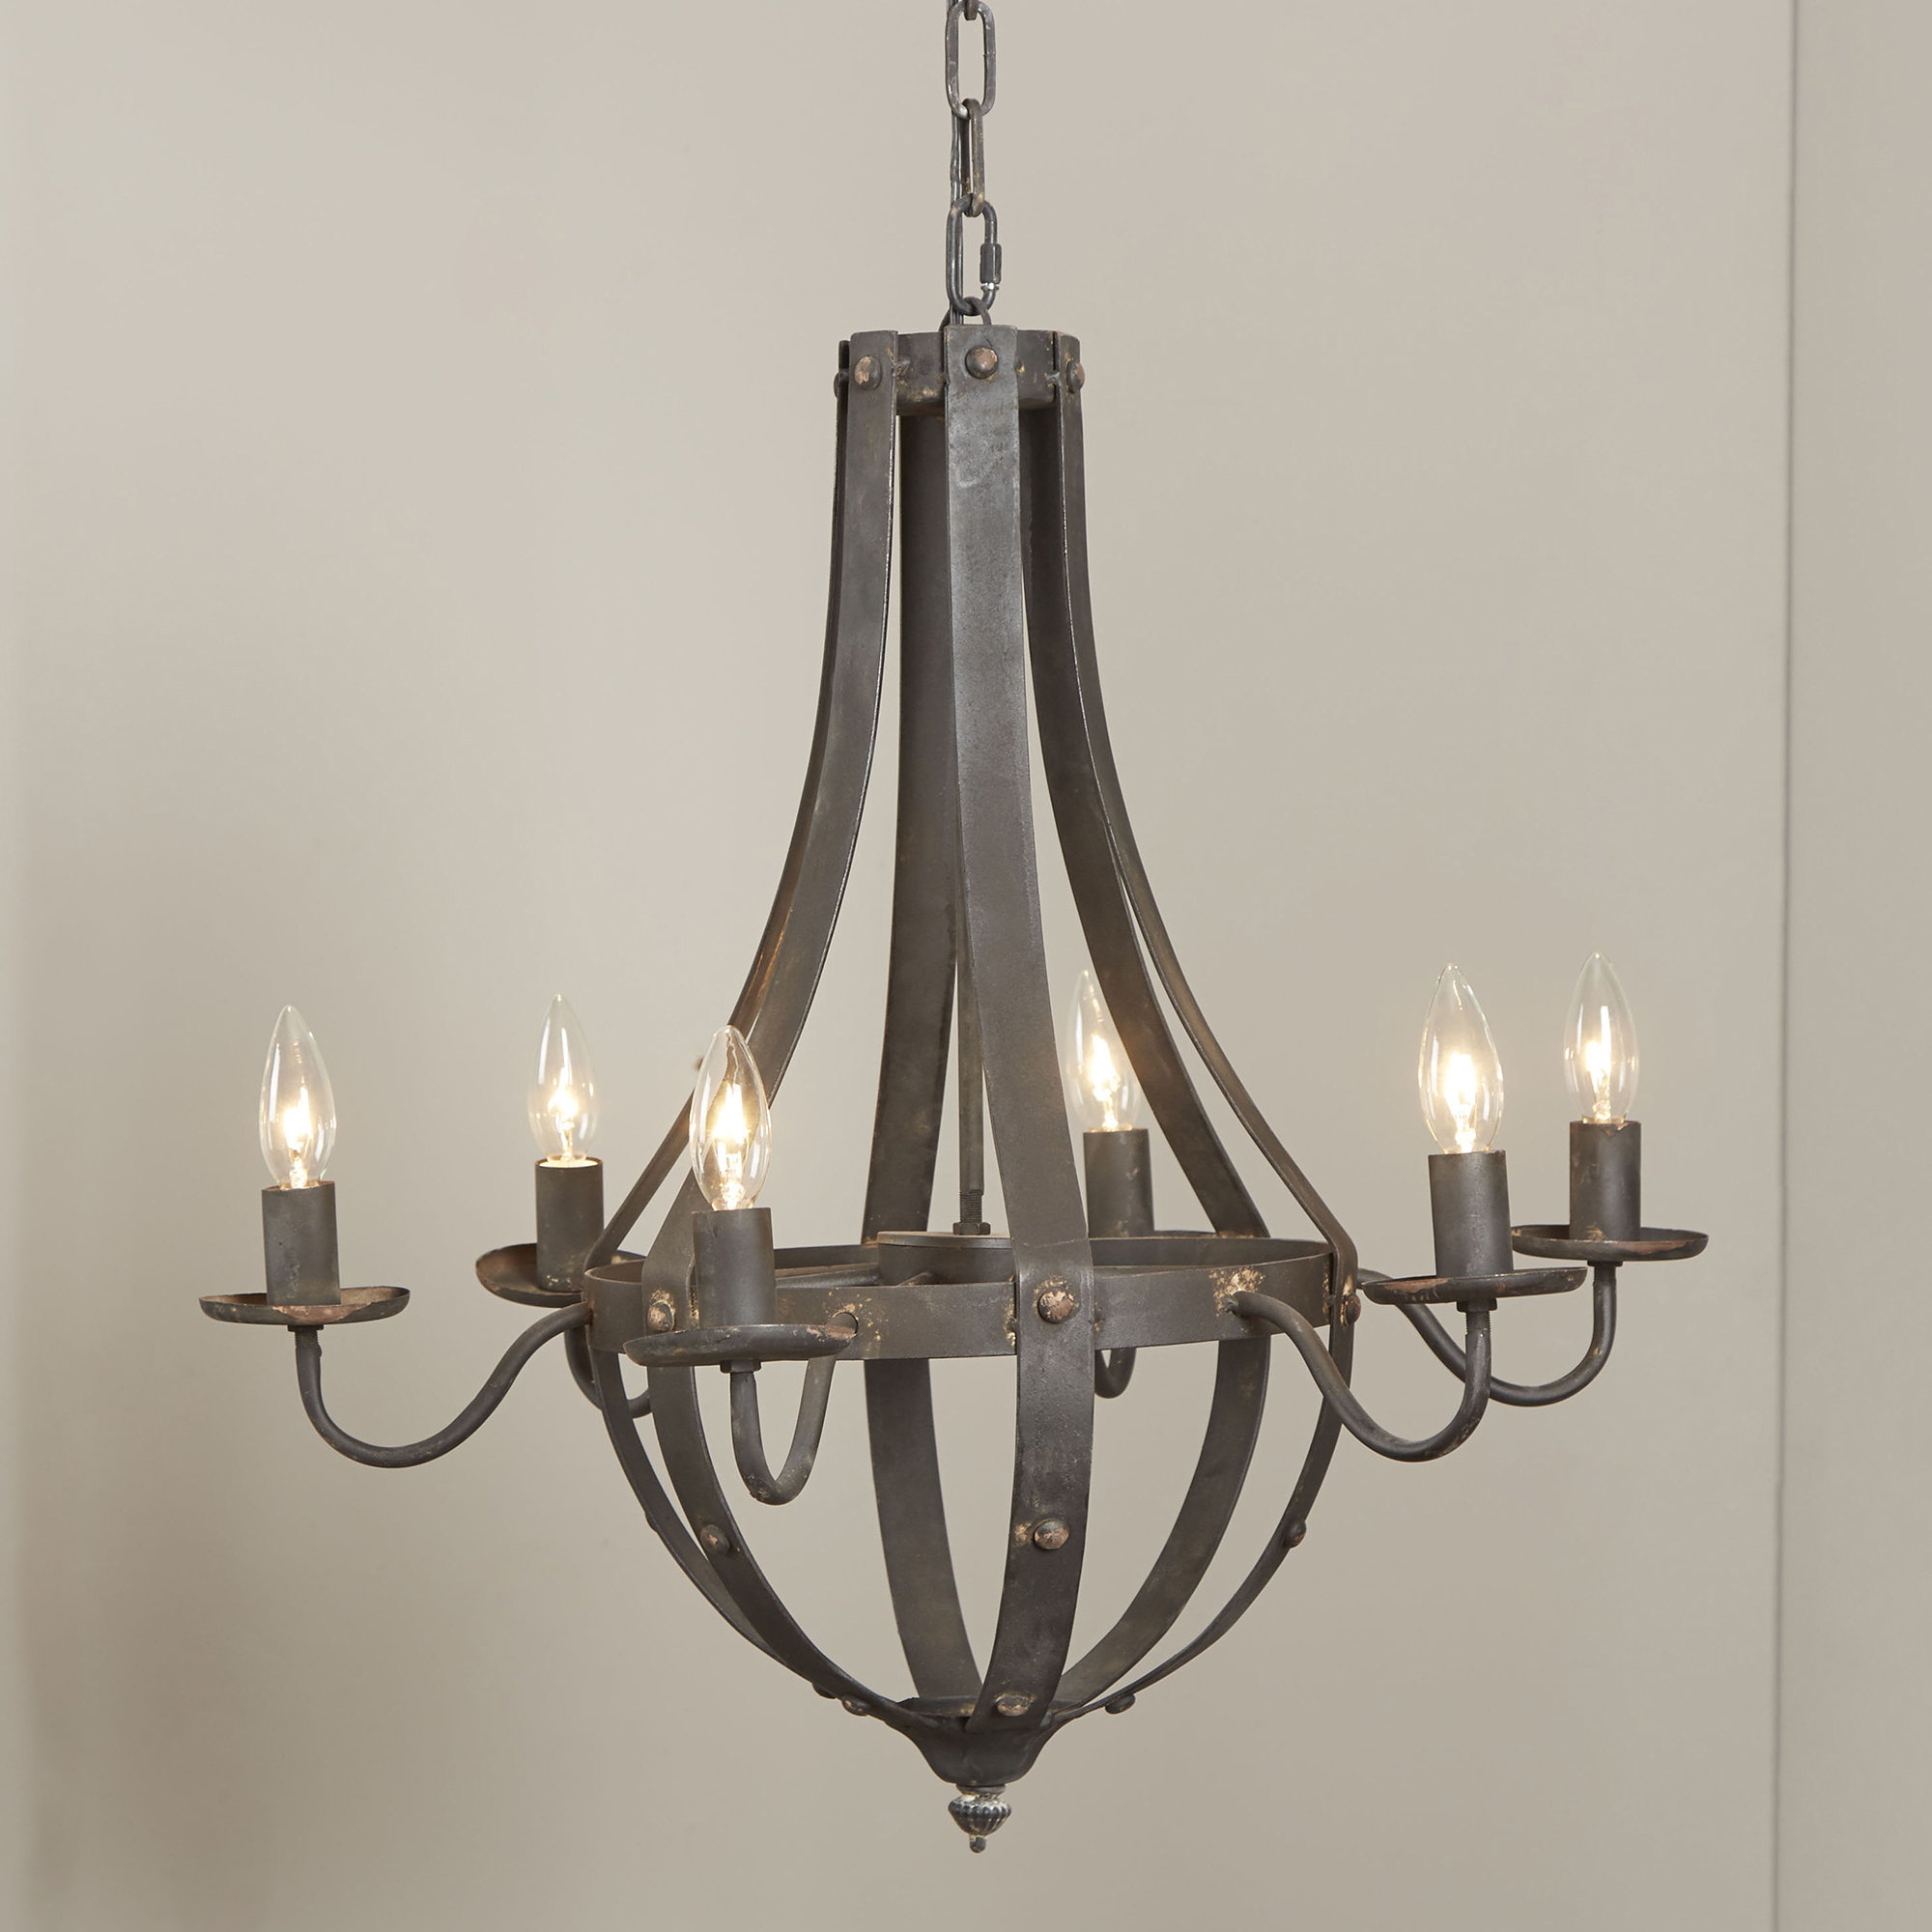 Foulds 6 Light Empire Chandelier With Shaylee 6 Light Candle Style Chandeliers (View 10 of 30)